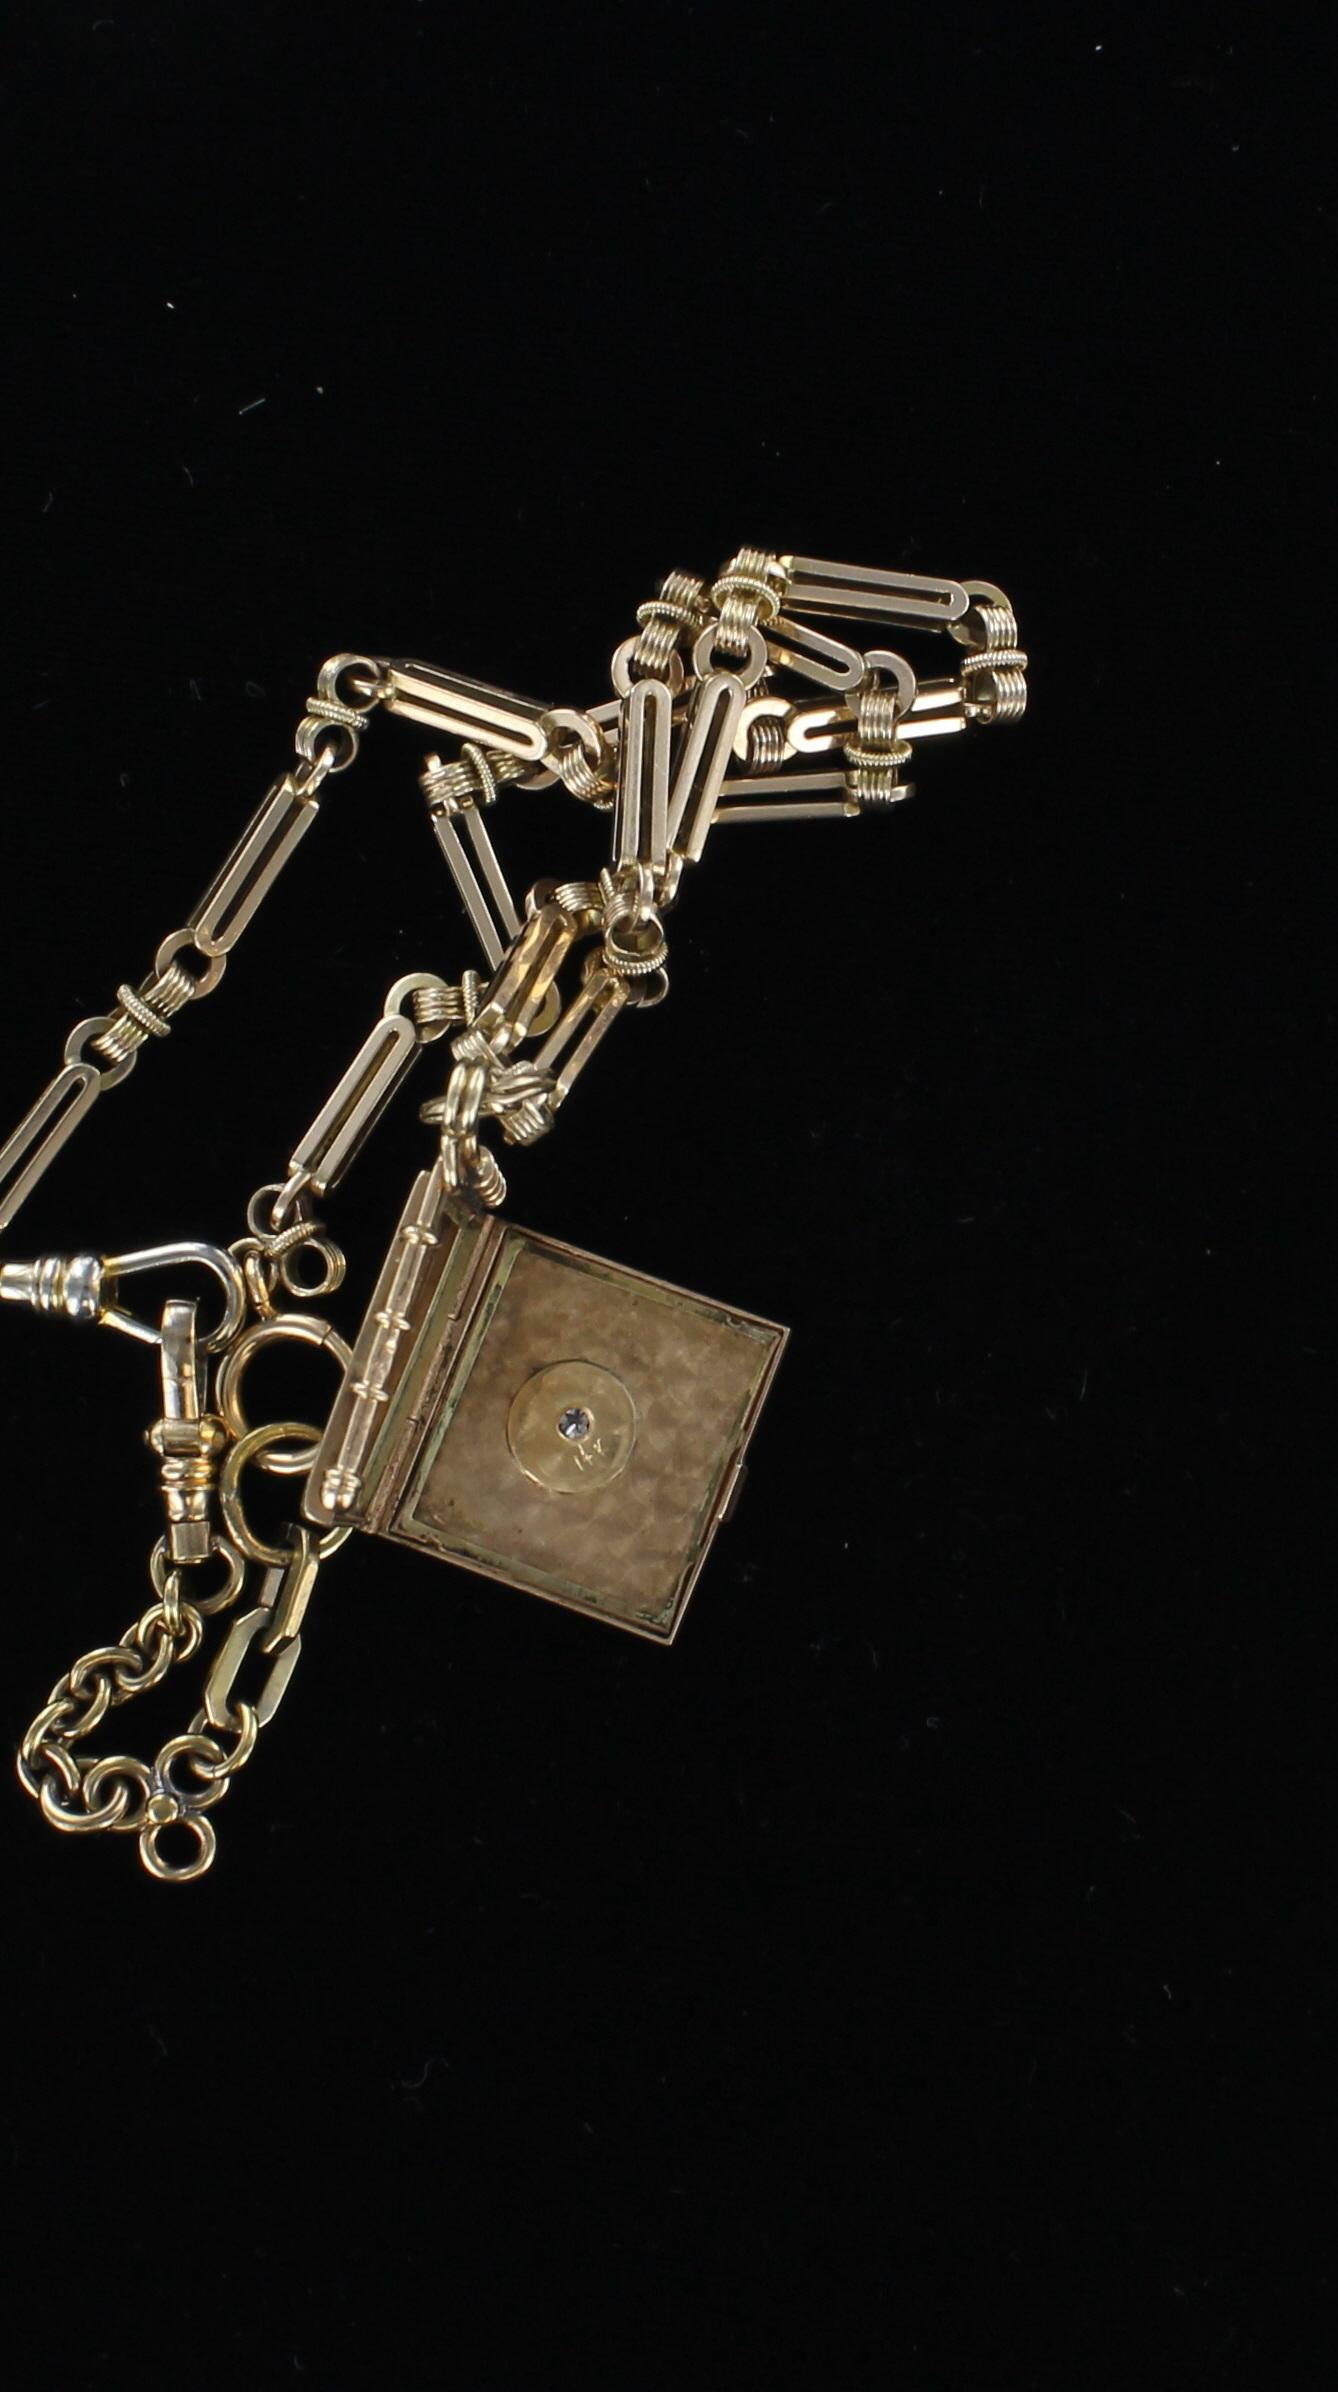 9KT LOCKET WITH WATCH CHAIN CIRCA 1900